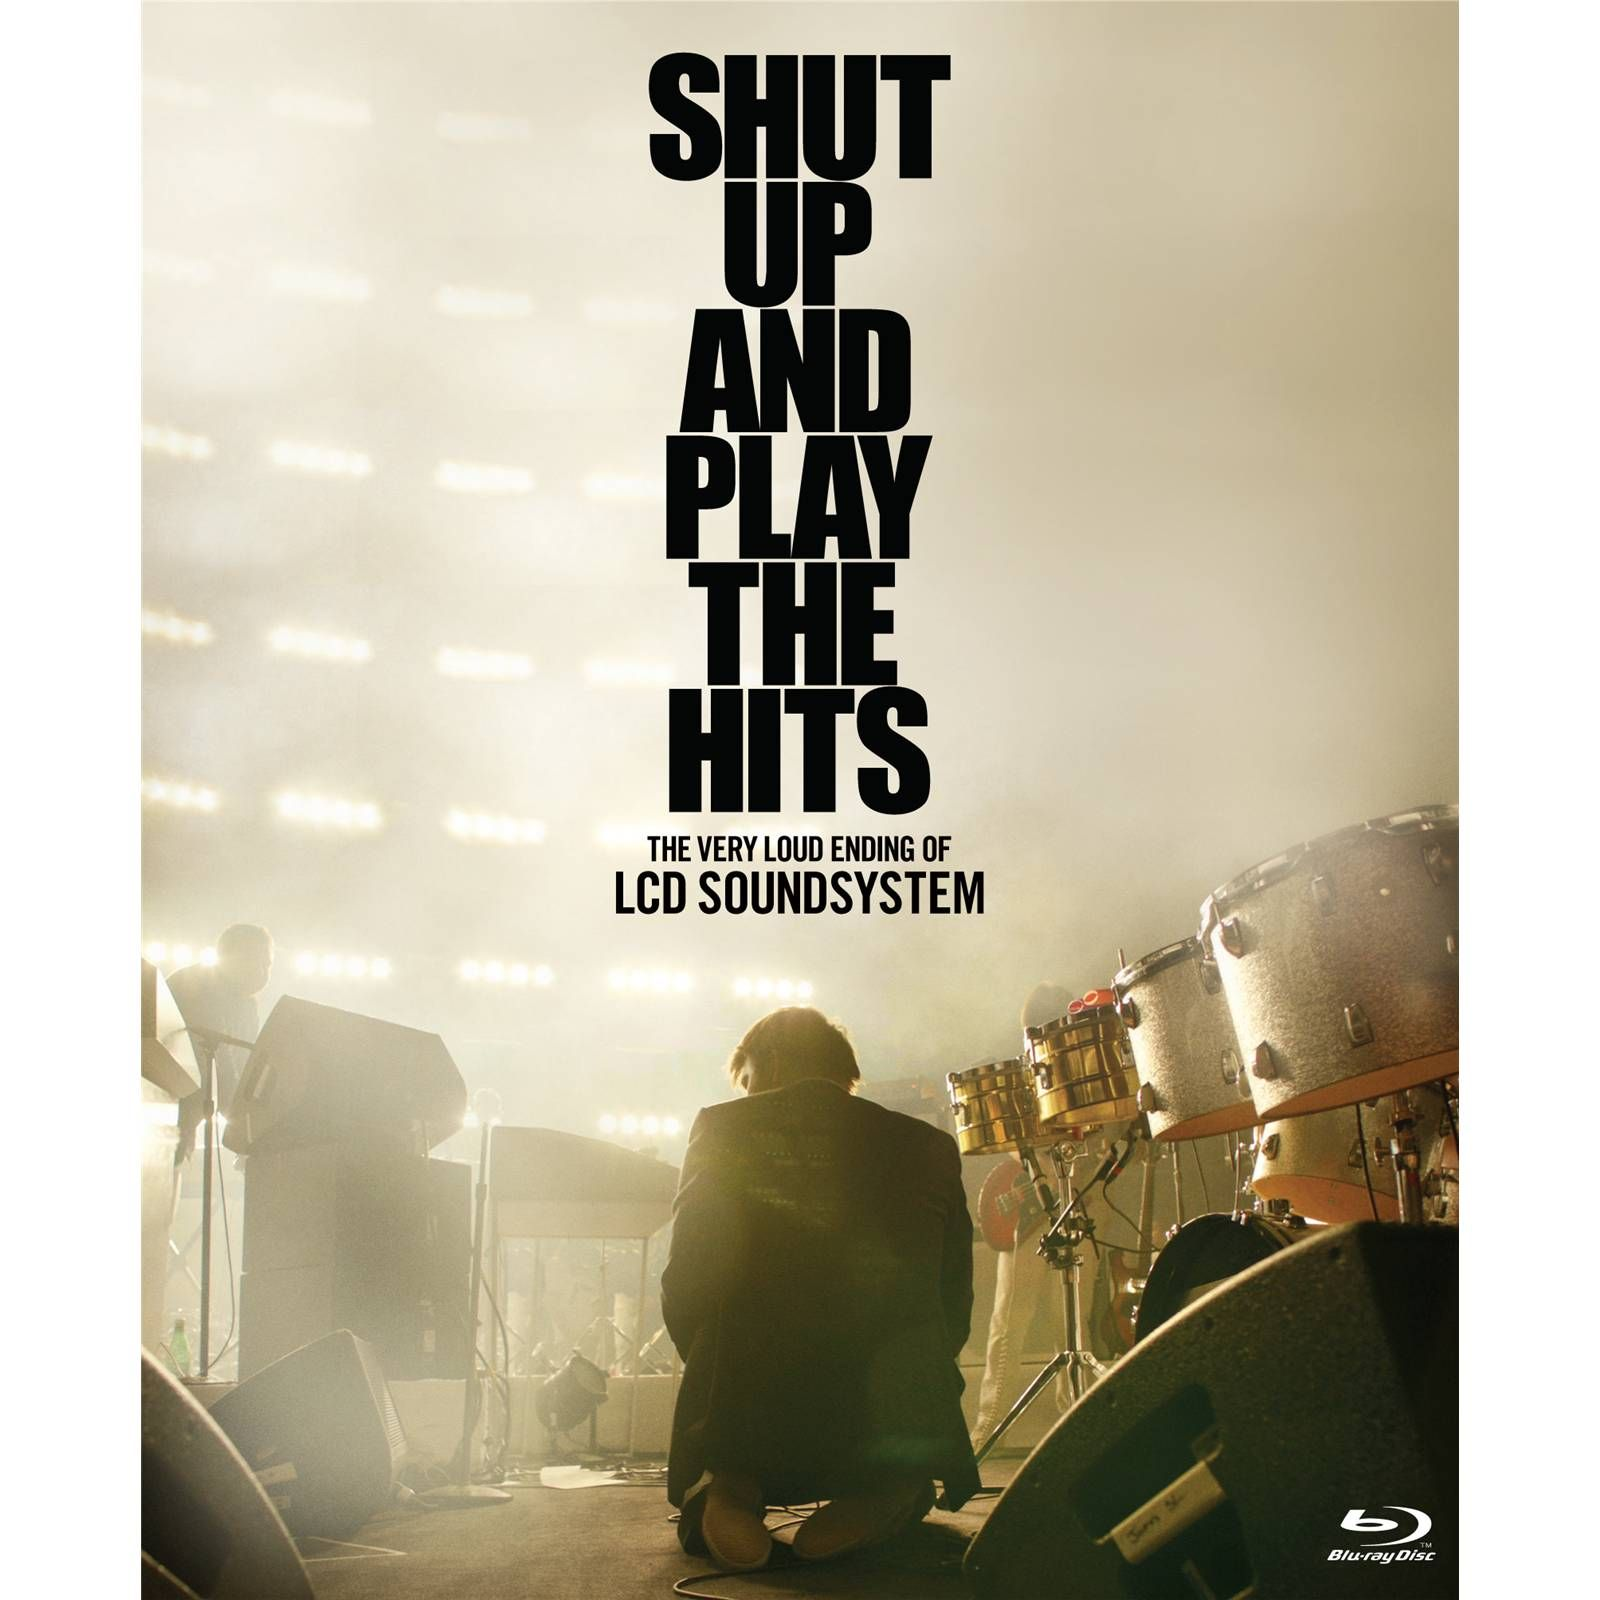 Shut-Up-And-Play-The-Hits-CD2-cover